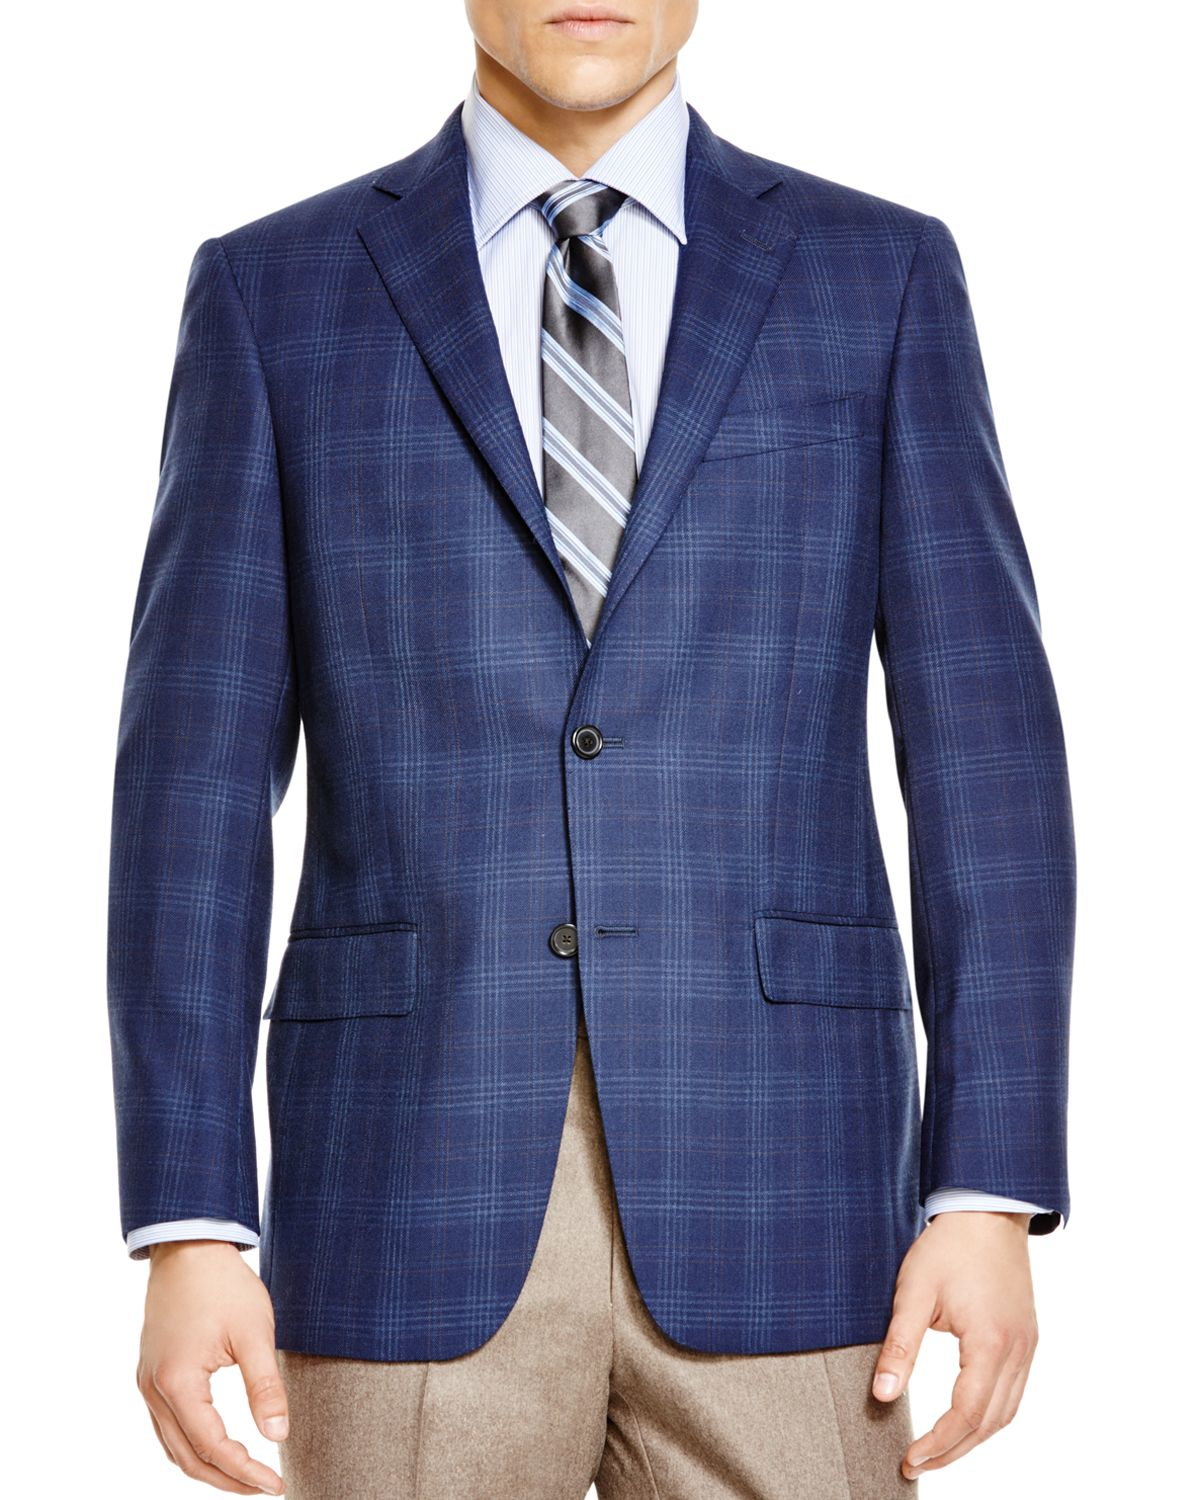 Hart schaffner marx Plaid Classic Fit Sport Coat - Bloomingdale's ...